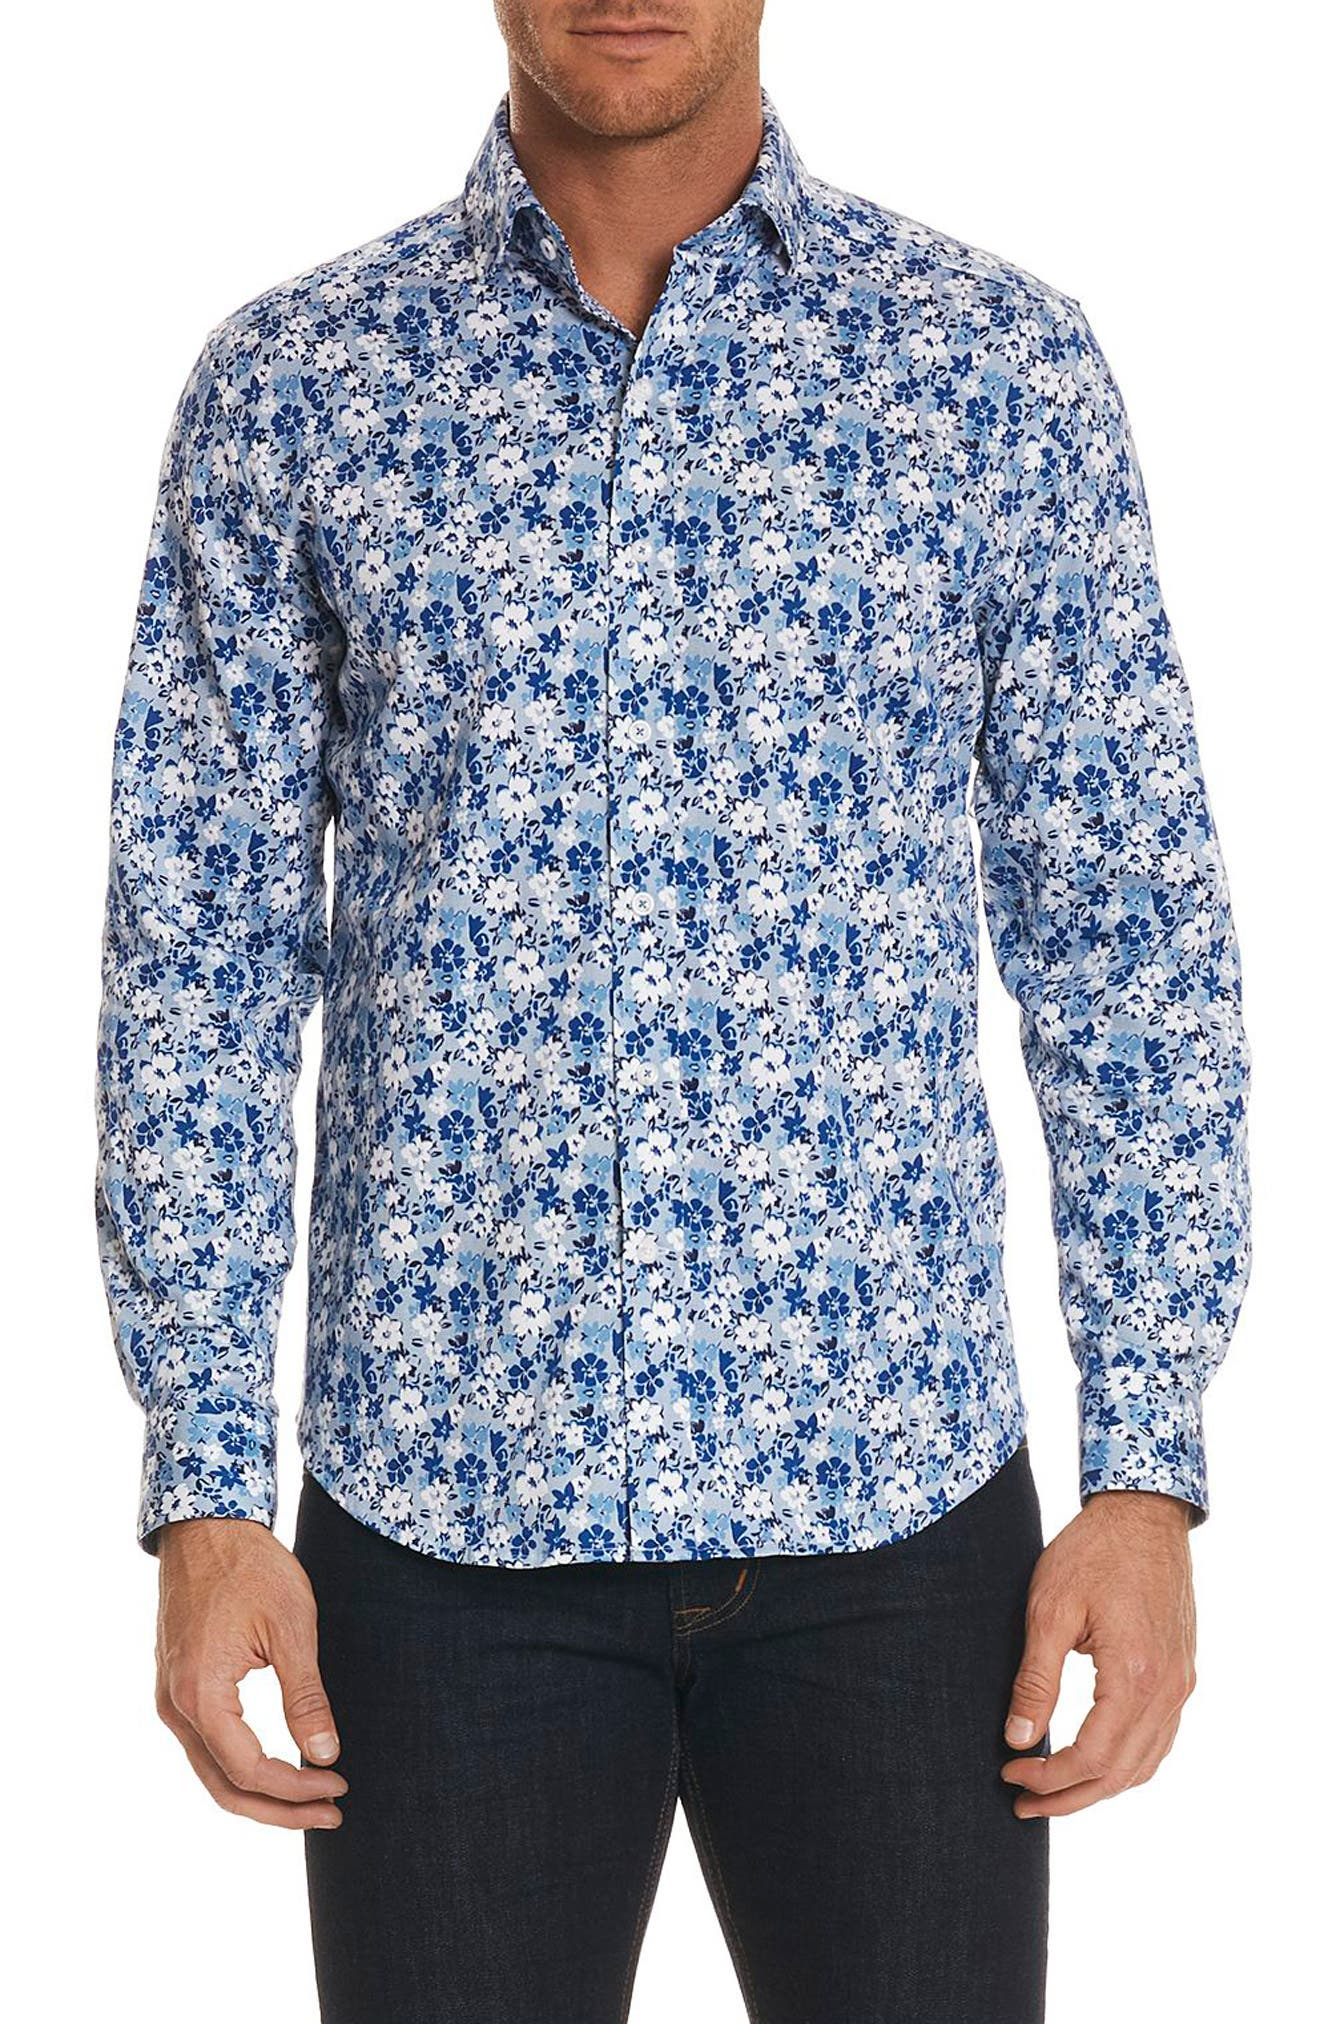 Asher Tailored Fit Floral Sport Shirt,                             Main thumbnail 1, color,                             Blue